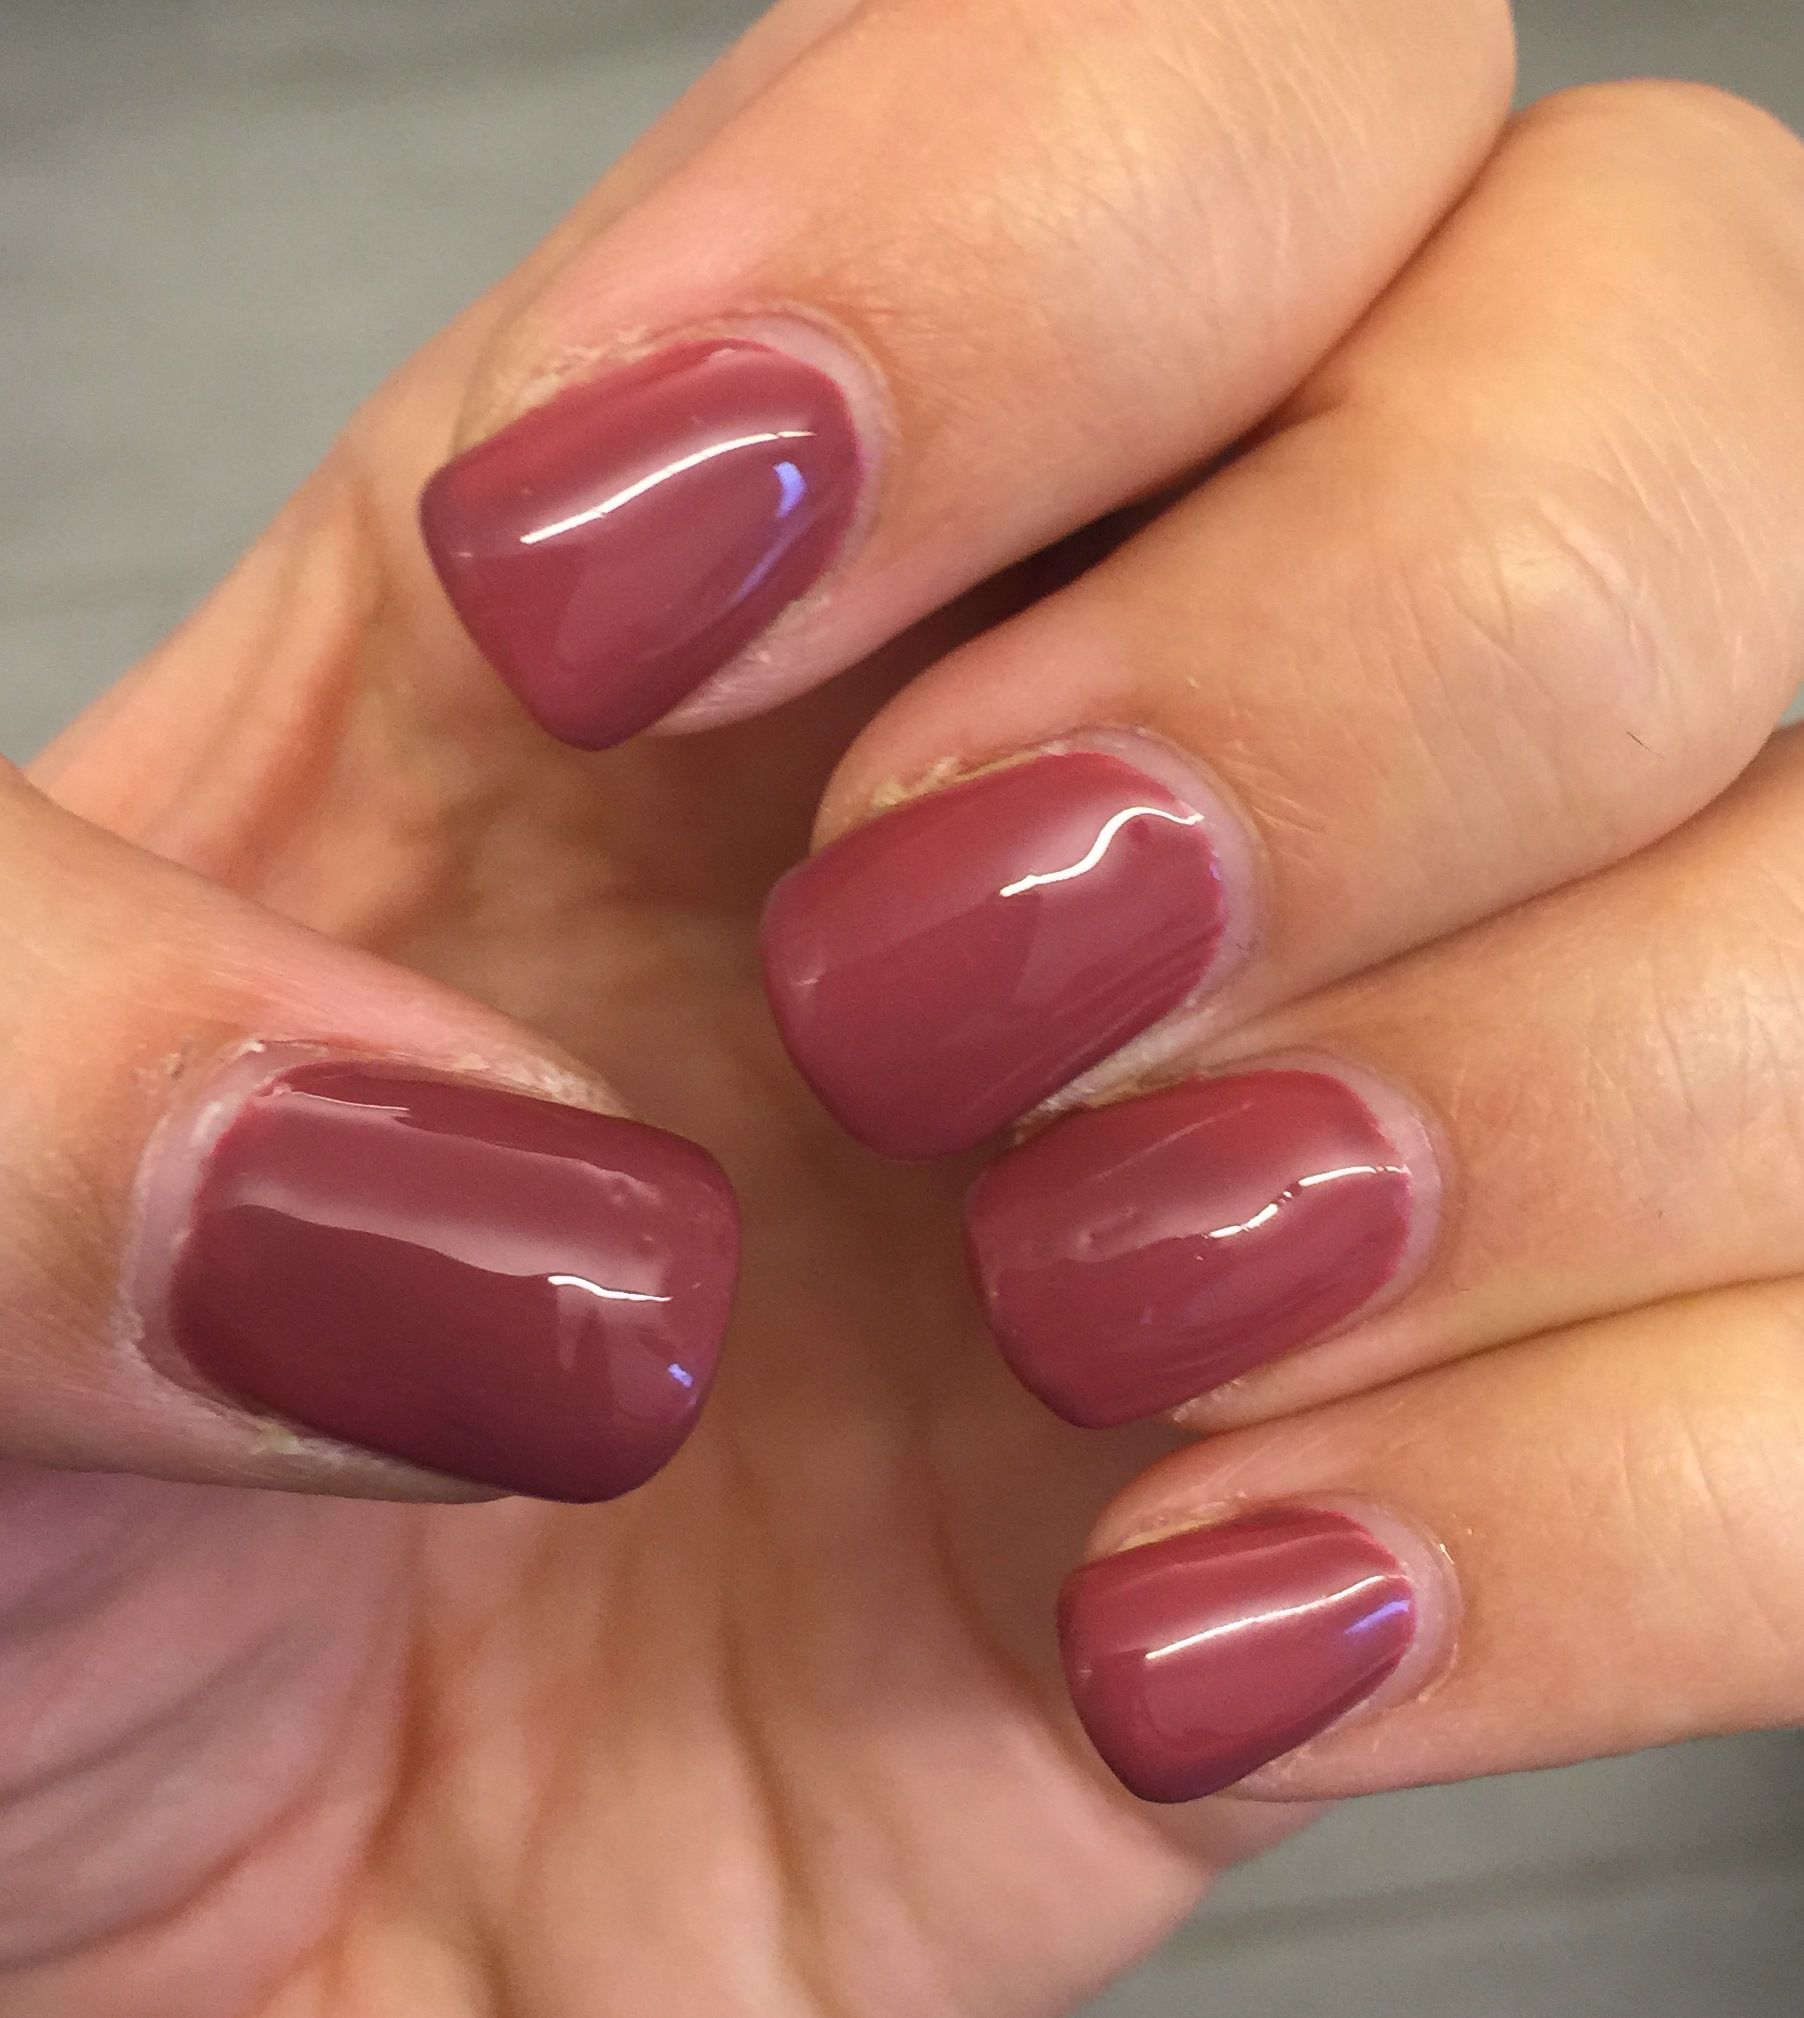 Berry Nude gel nails.